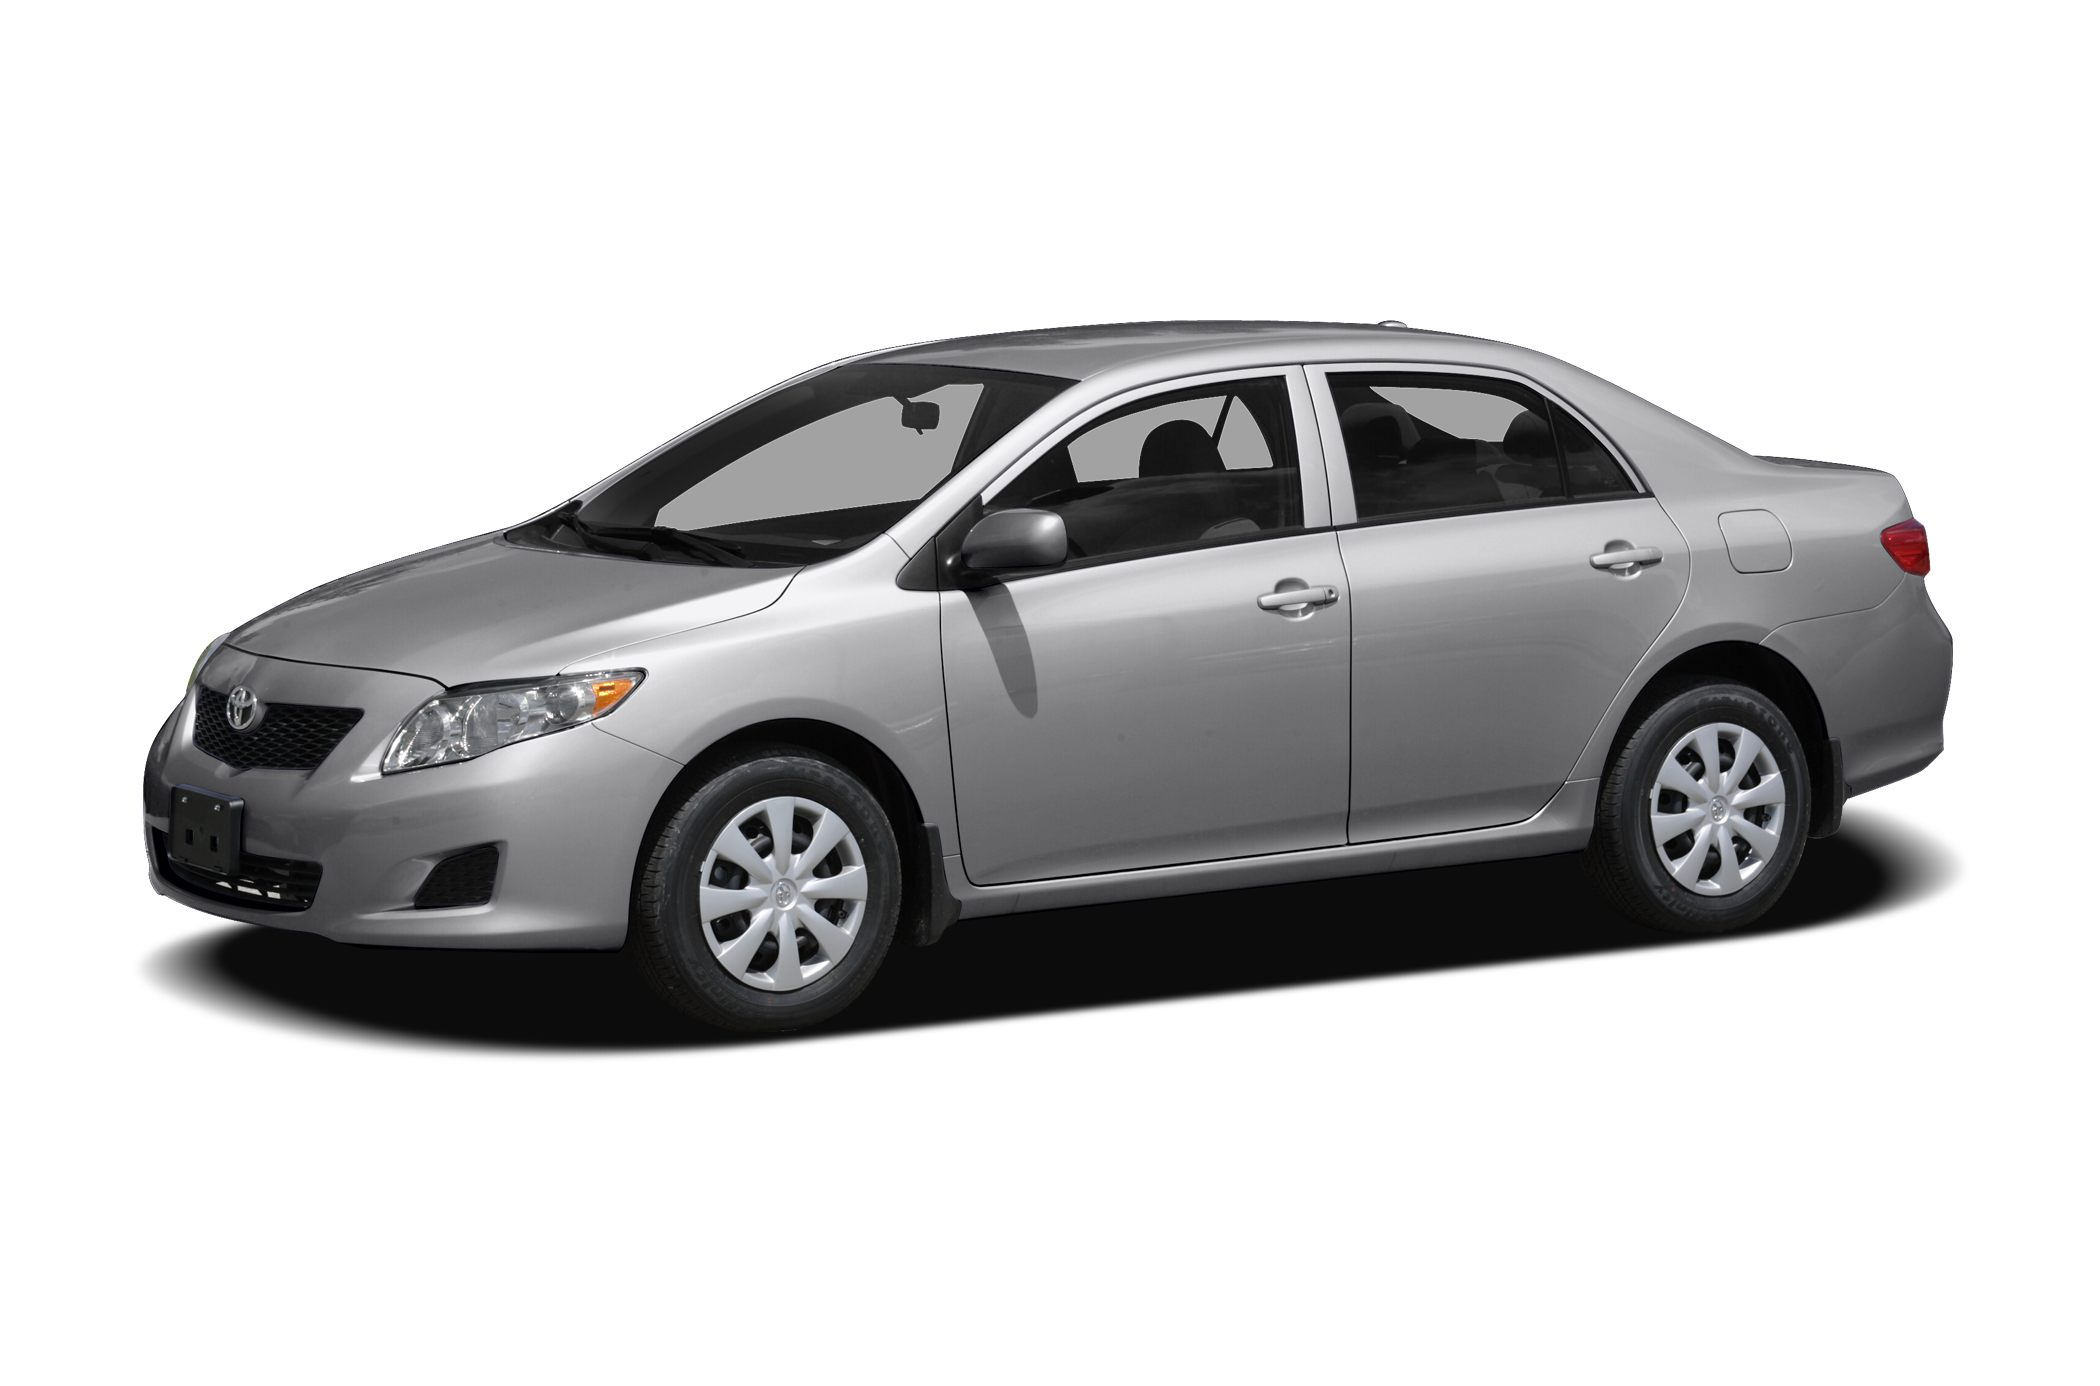 2009 Toyota Corolla Pricing And Specs